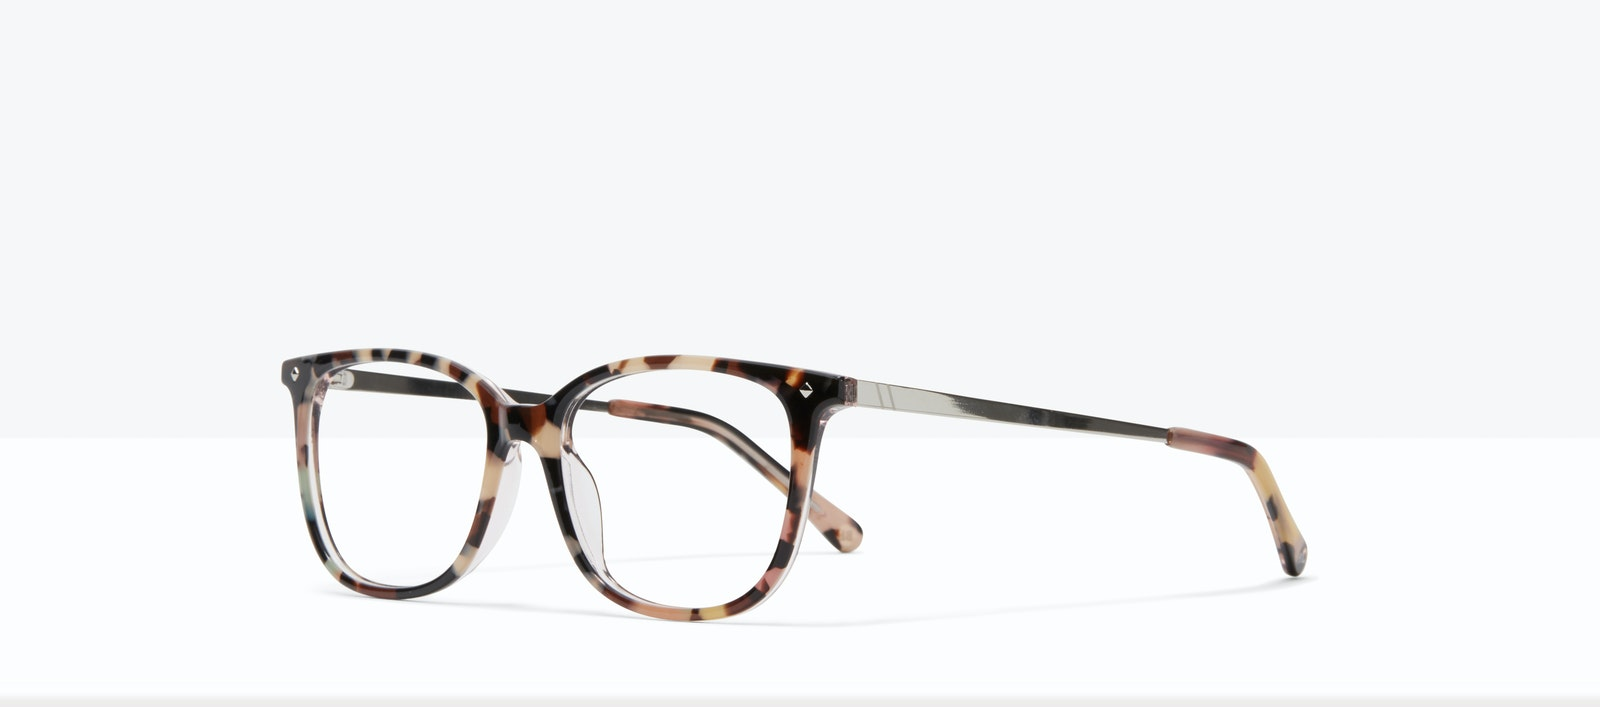 Affordable Fashion Glasses Rectangle Square Eyeglasses Women Refine S Pastel Tort Tilt